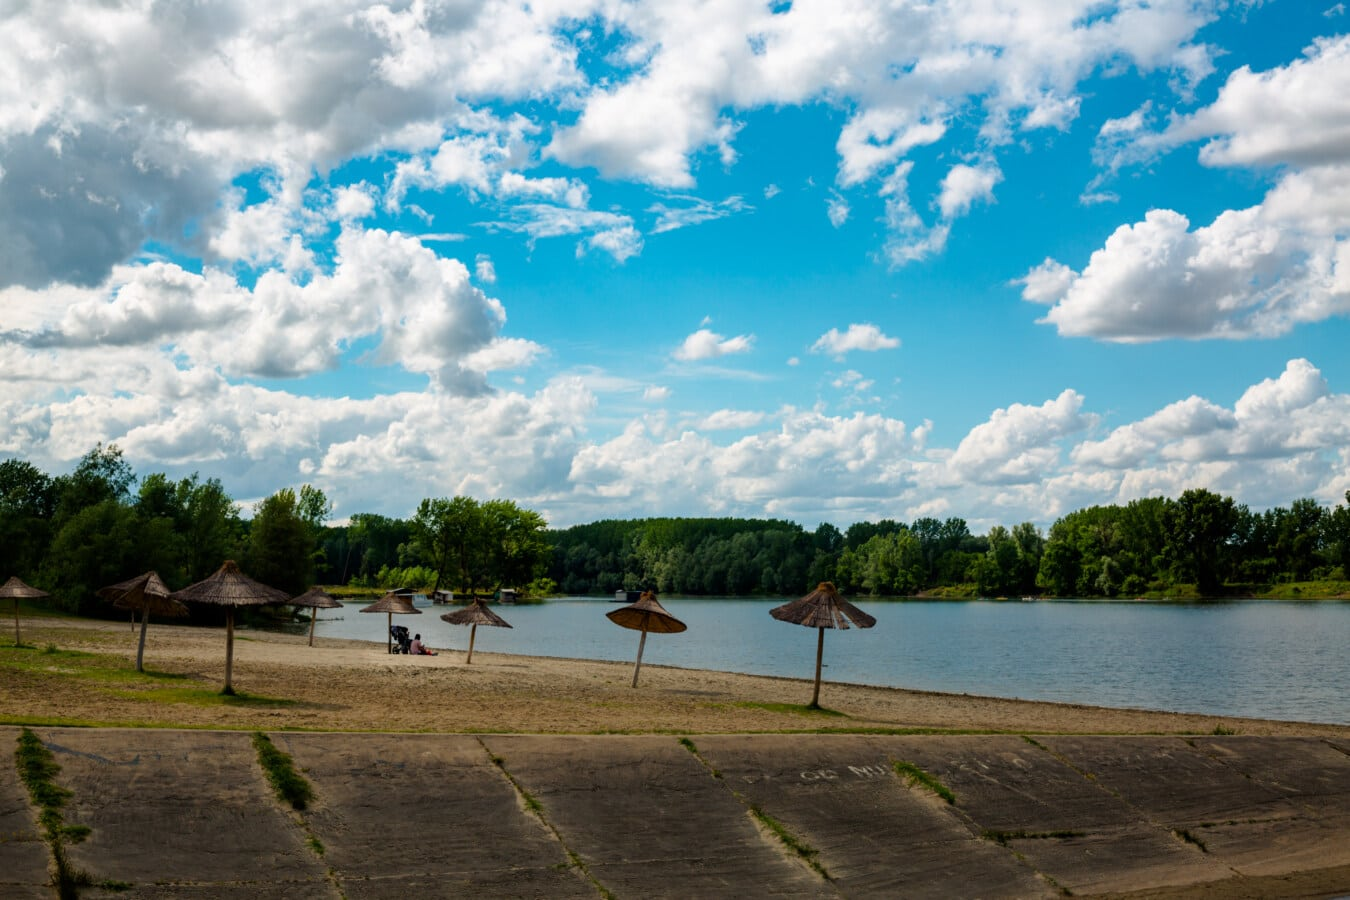 beach, parasol, lake, lakeside, spring time, clouds, atmosphere, water, nature, tree